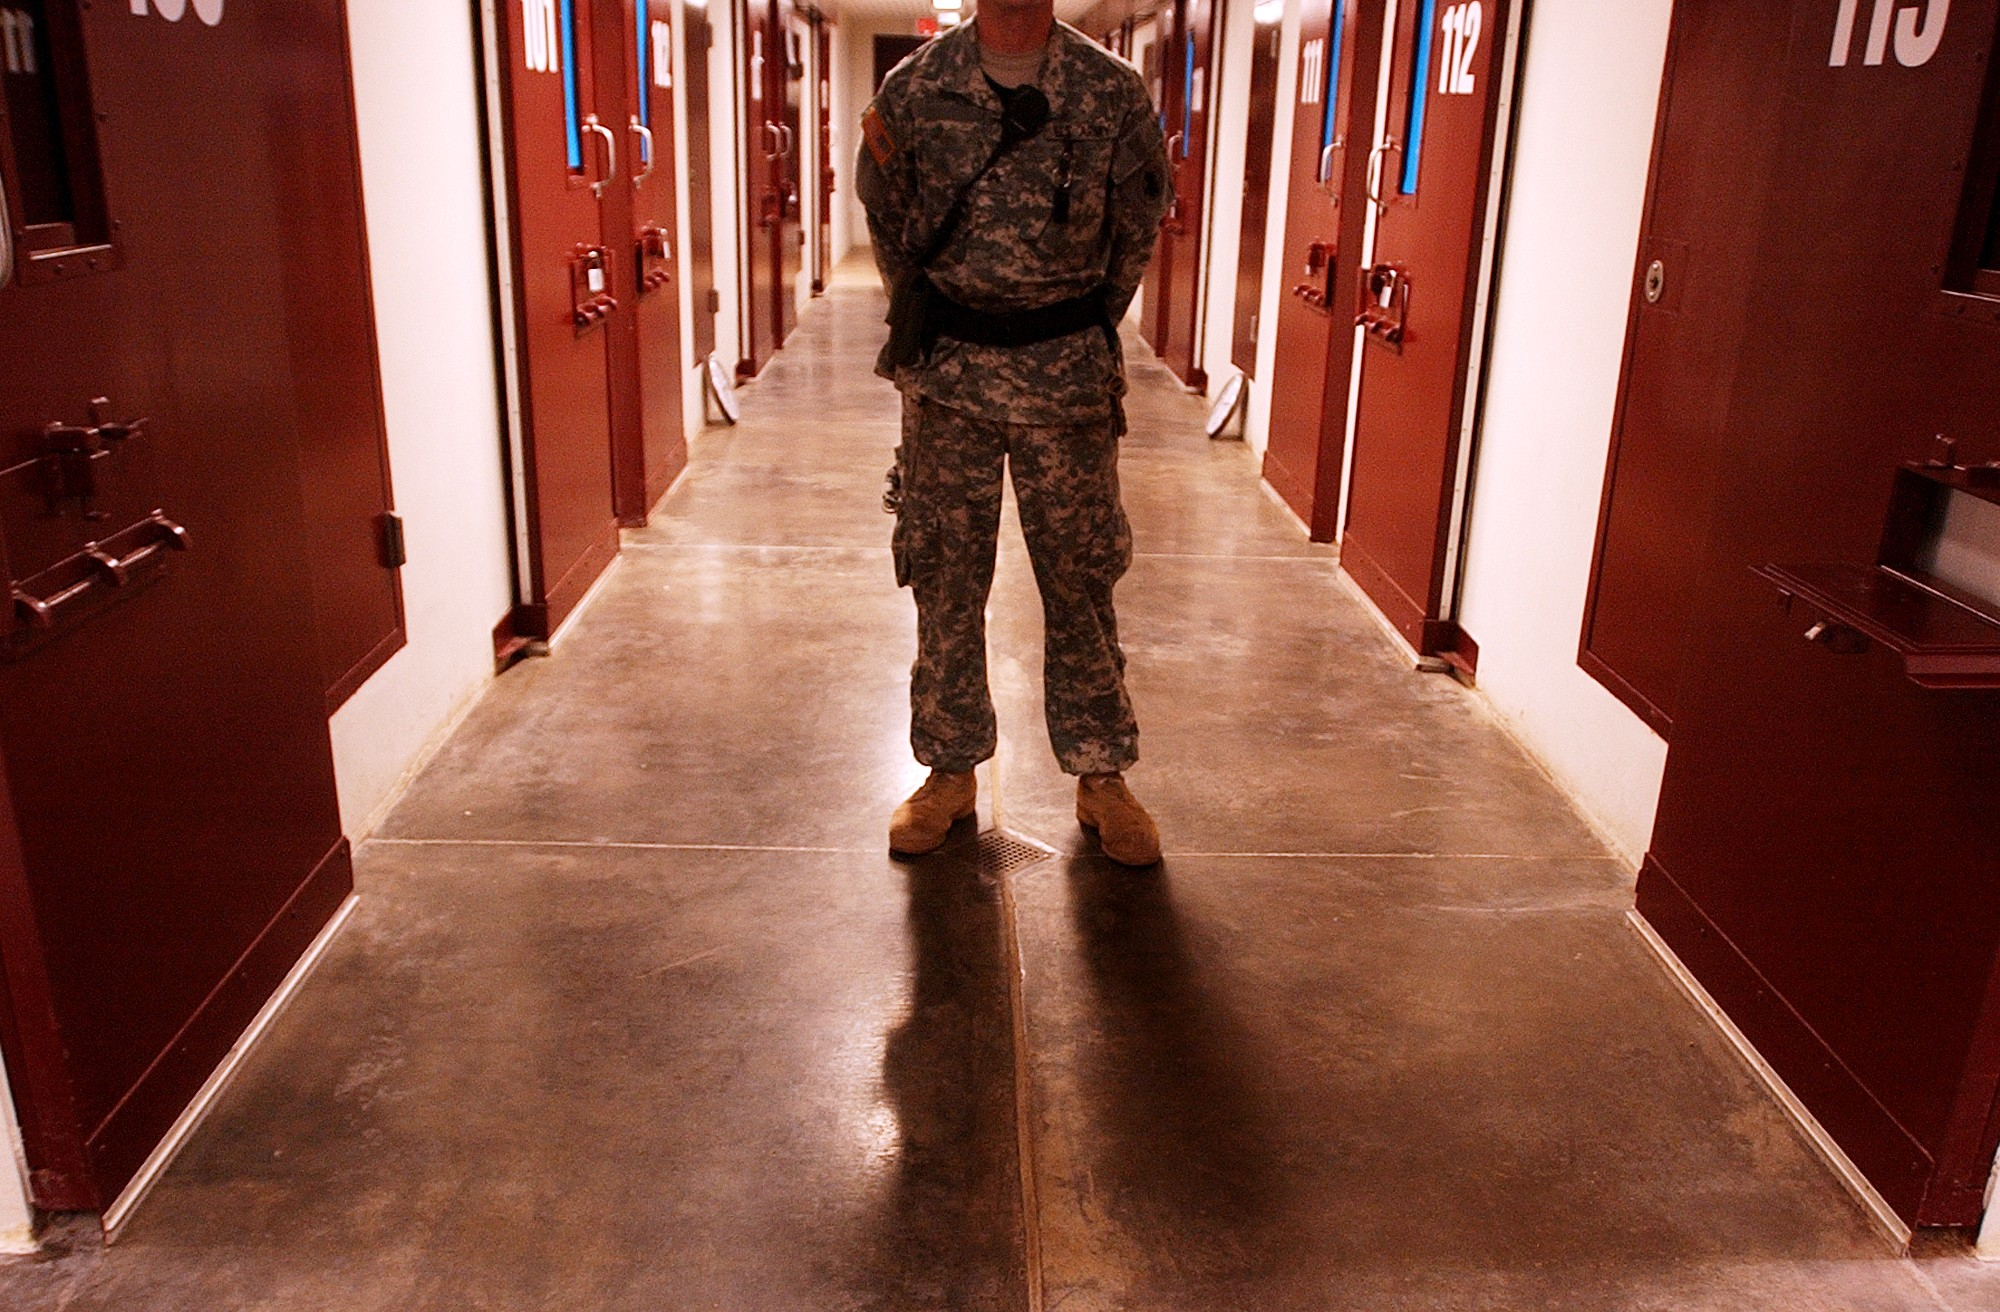 US Army Soldiers stand guard on a cell block inside Camp Five at the detention centre, Guantanamo Bay, Cuba, 14 November 2006. Camp Five is one of six camps that comprise the detention center and has been built with many features that can be found in many maximum-security prisons in the United States.